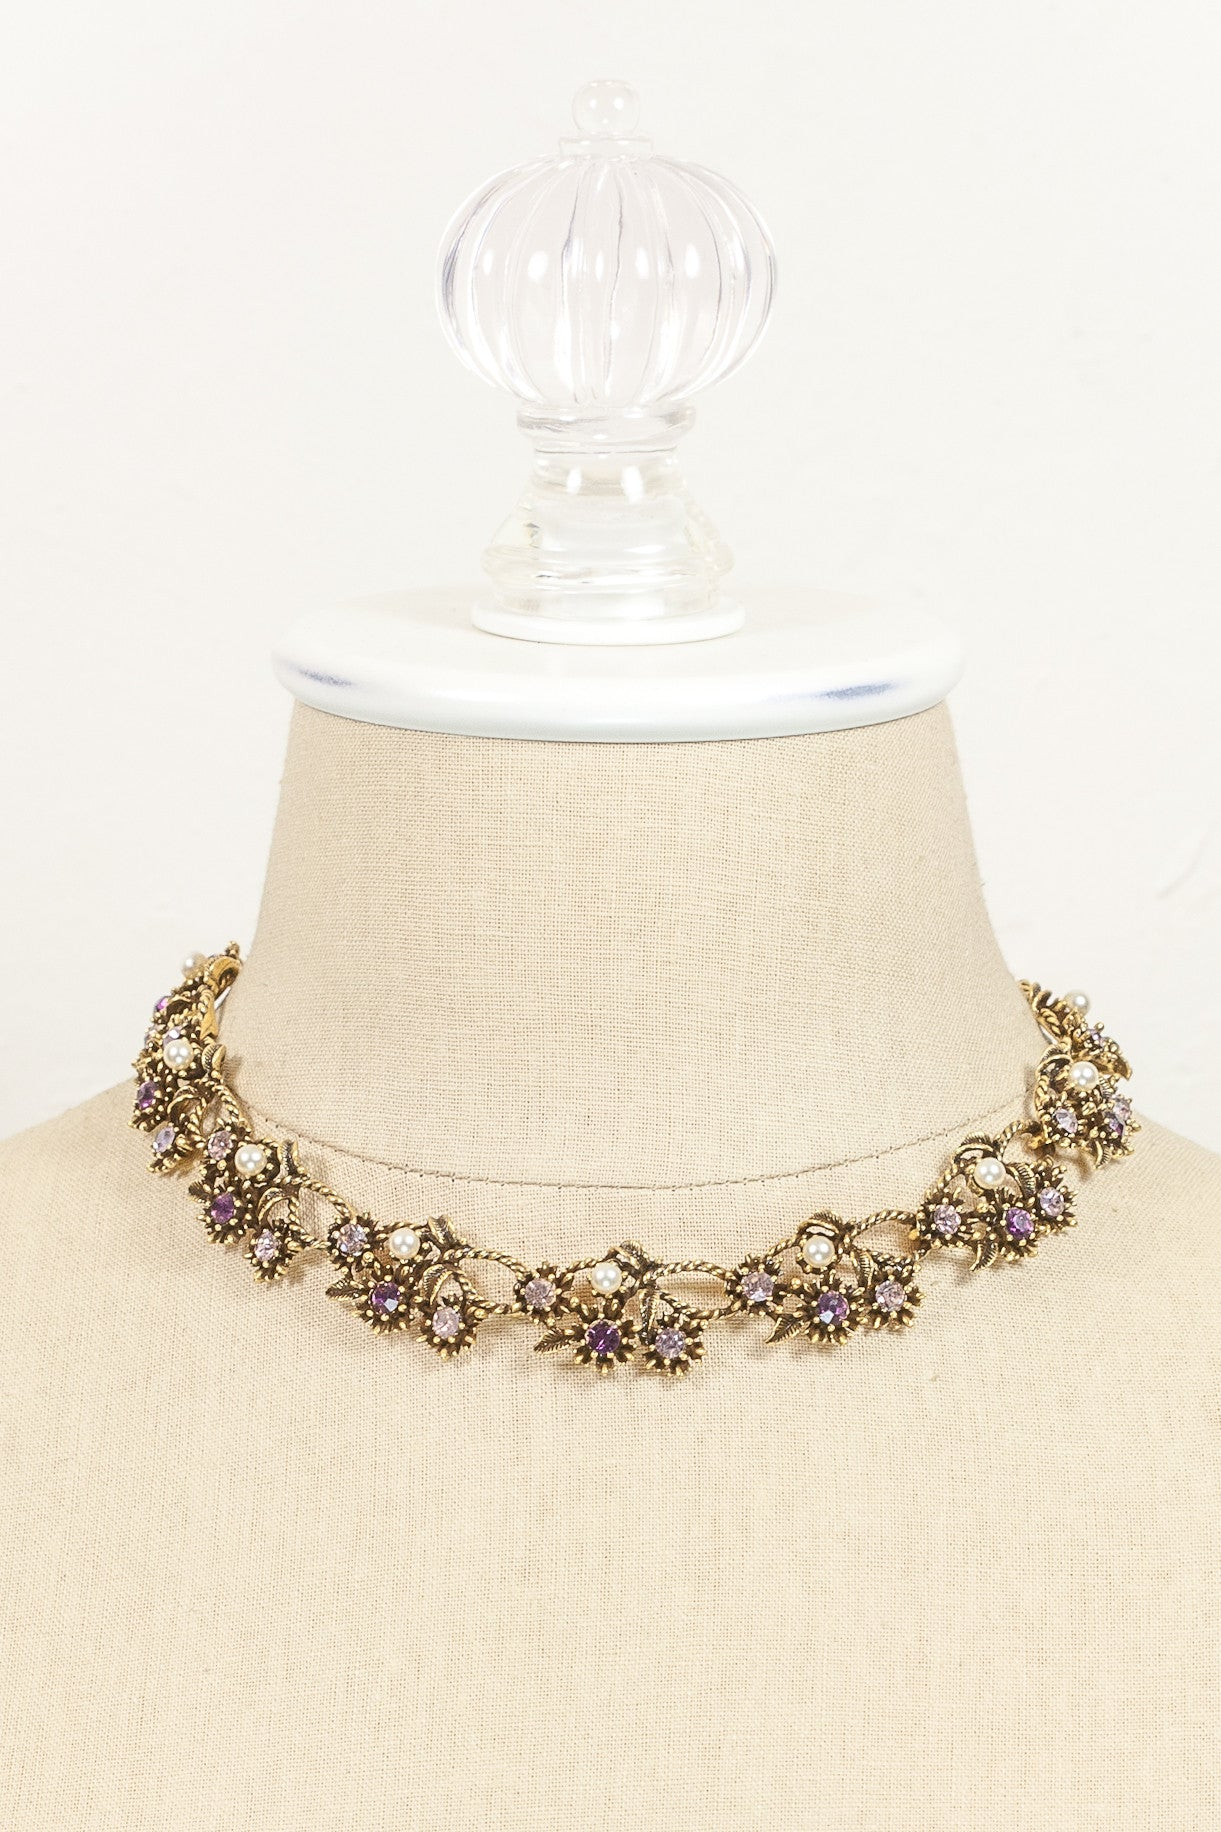 Vintage Coro Jeweled Cluster Necklace